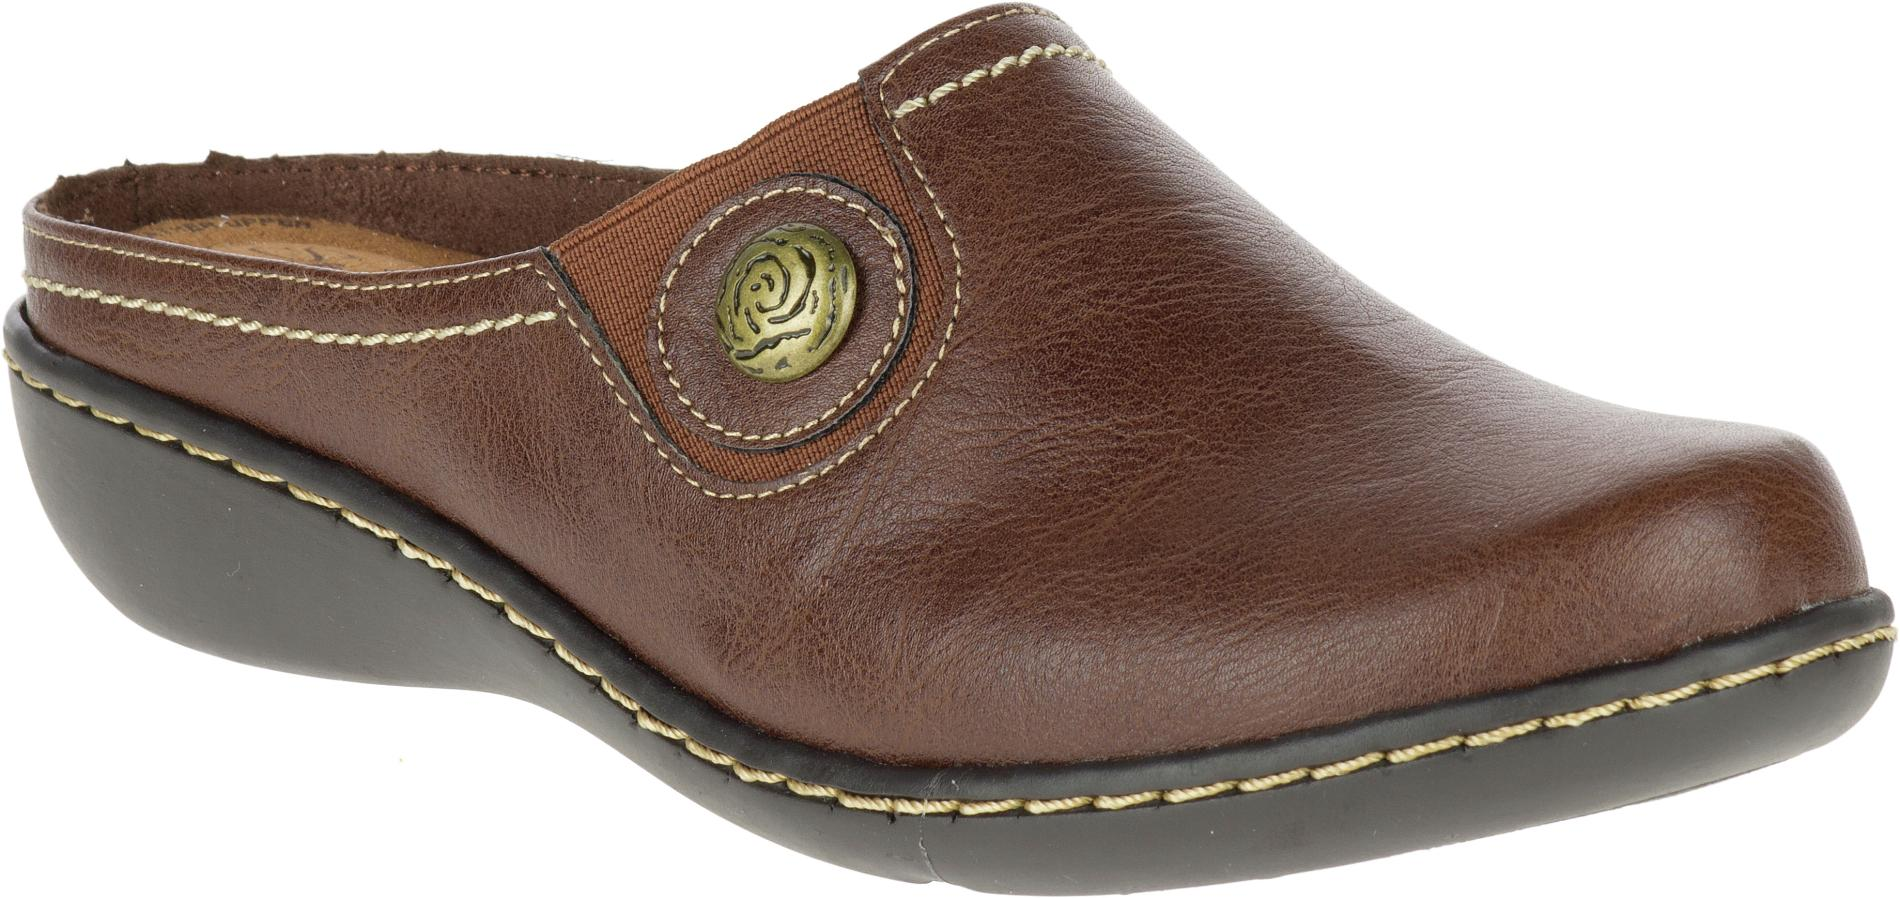 Soft Style Hush Puppies Women' Jamila Leather Clog - Brown